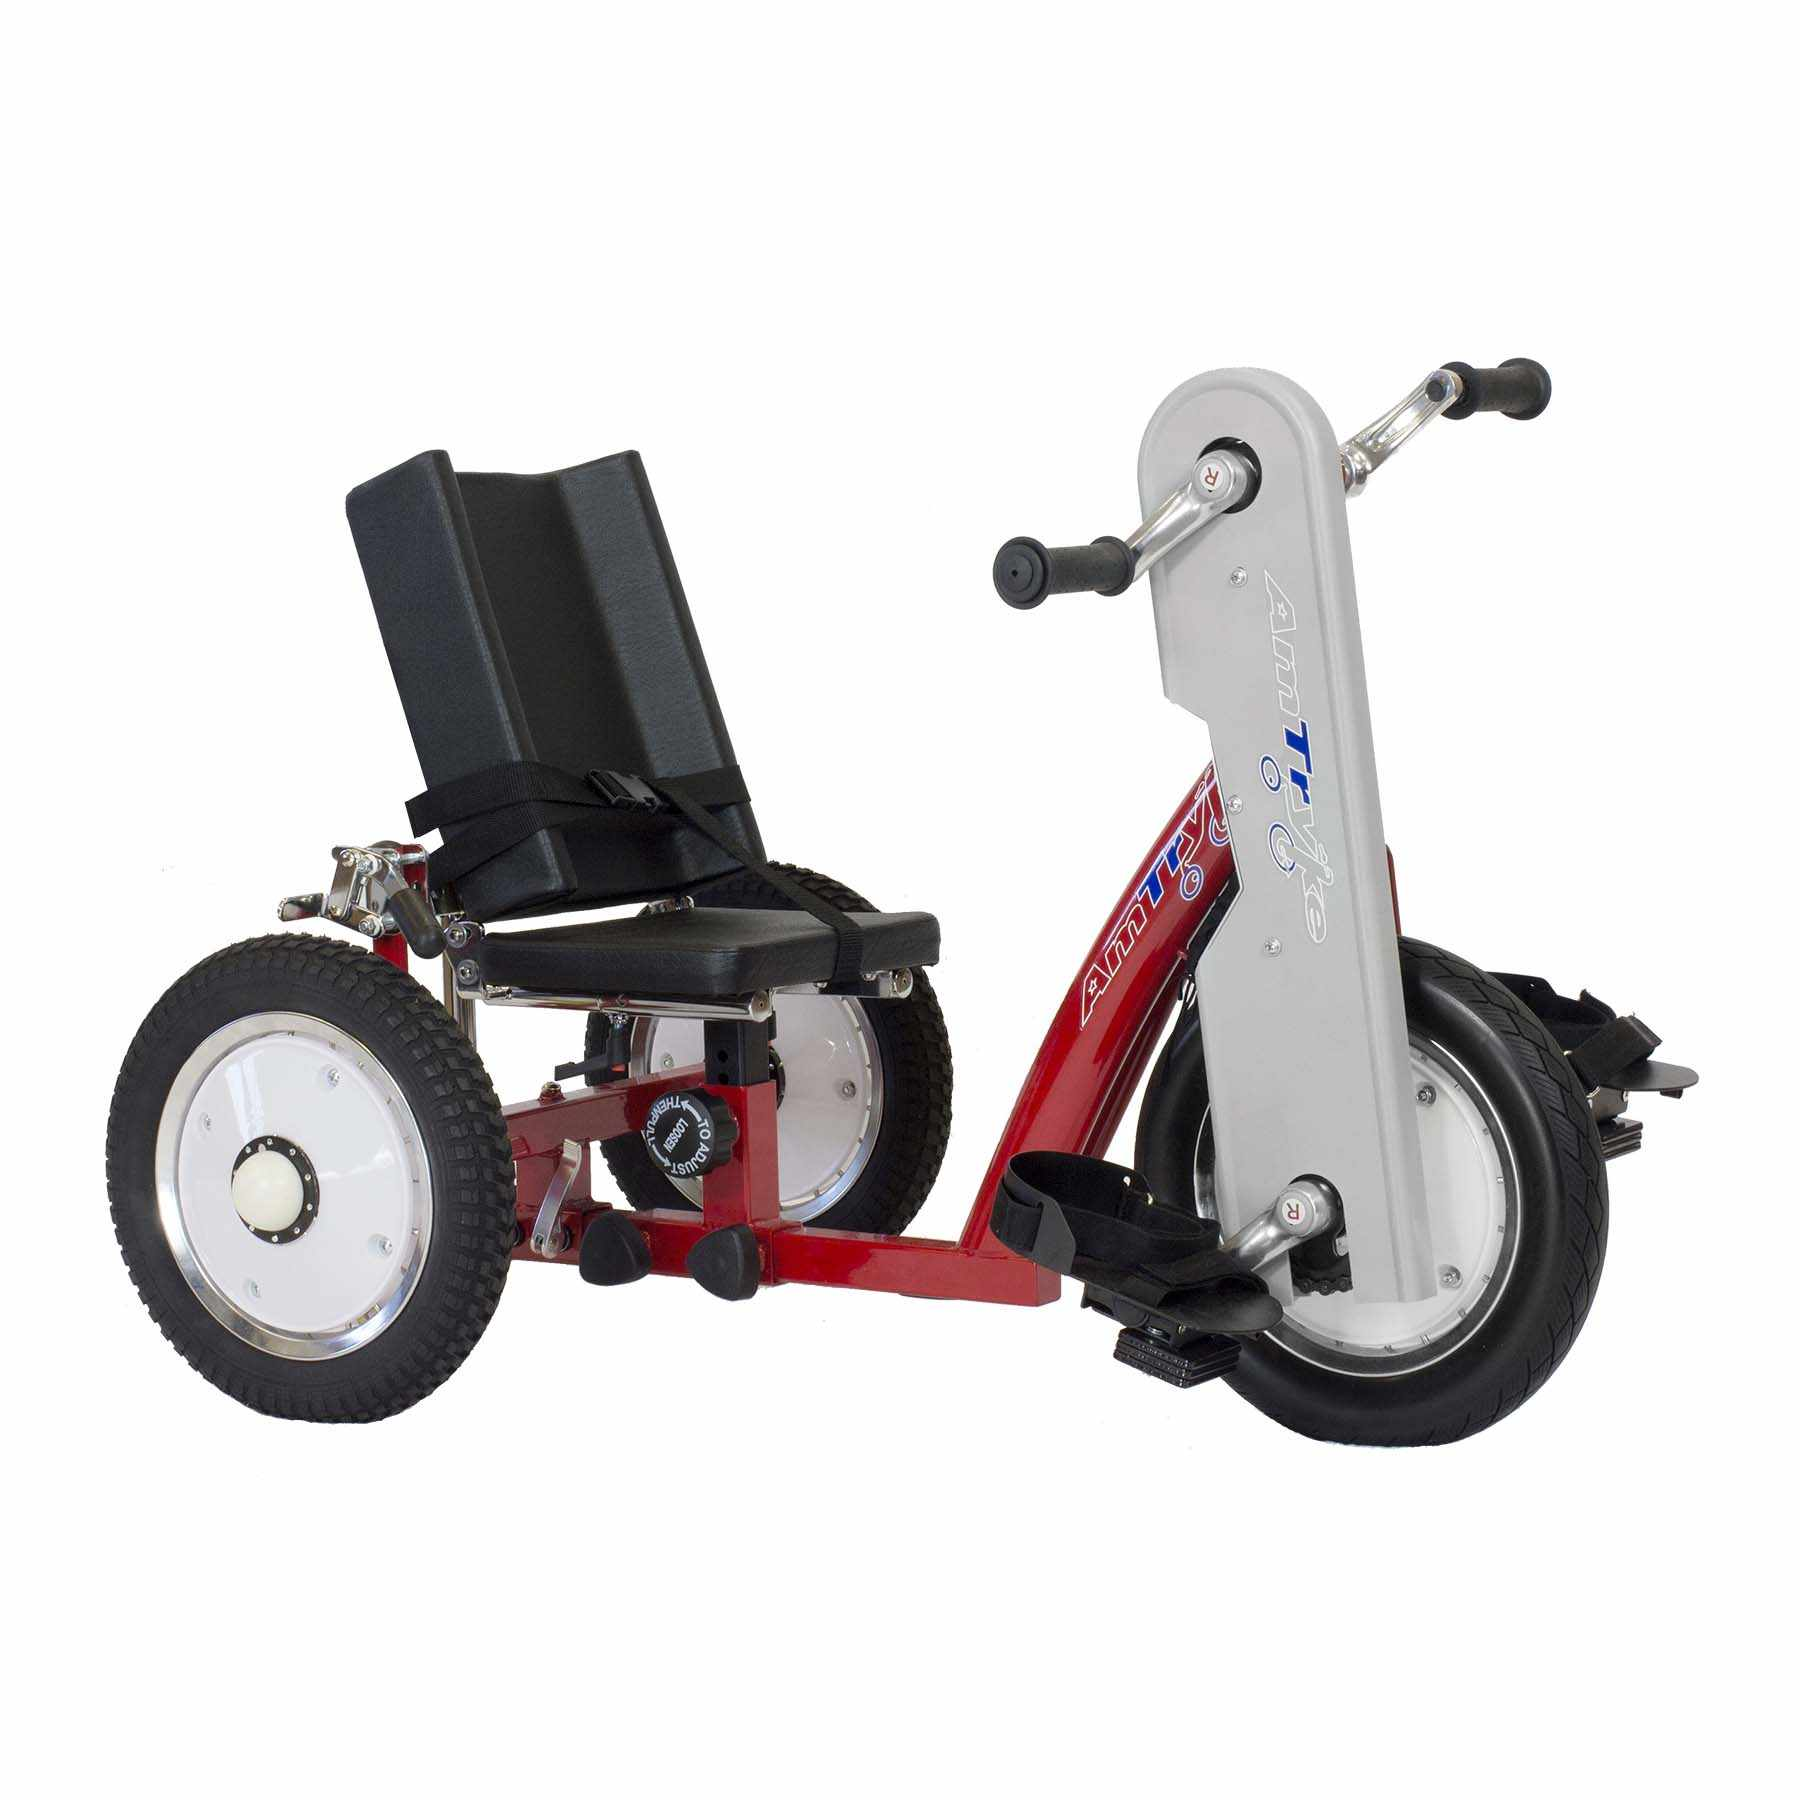 Amtryke AM-10 hand/foot tricycle with snappy seat